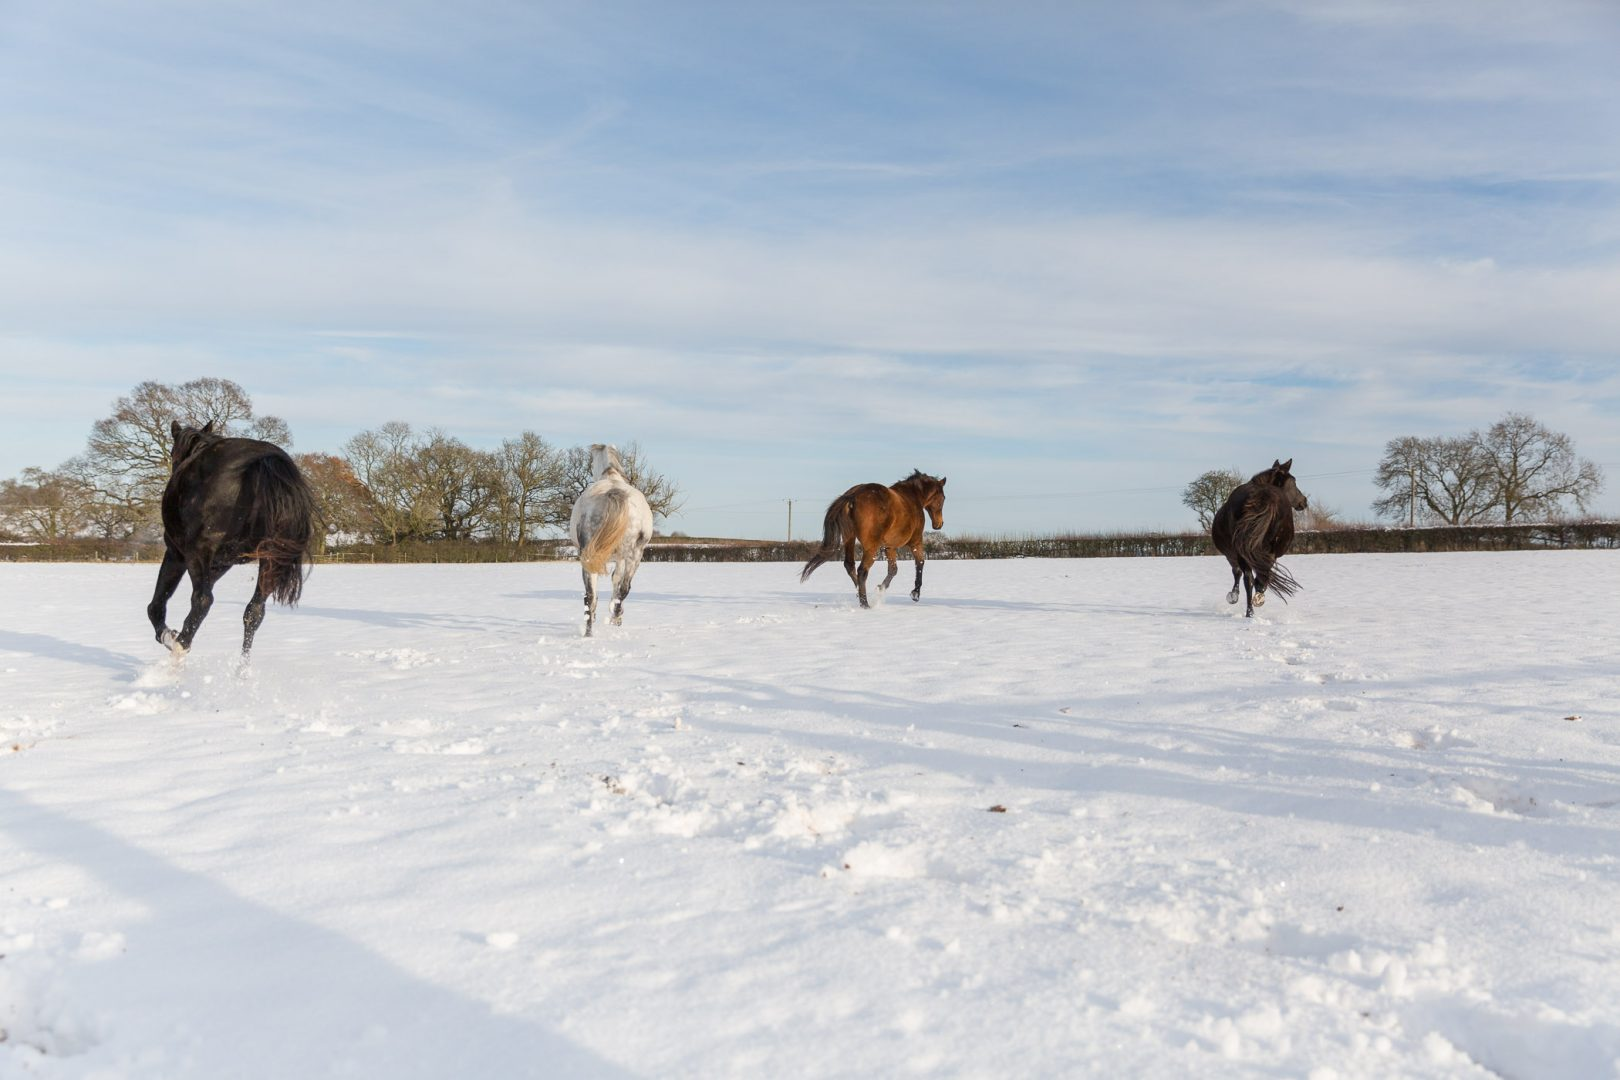 Horses galloping in snow